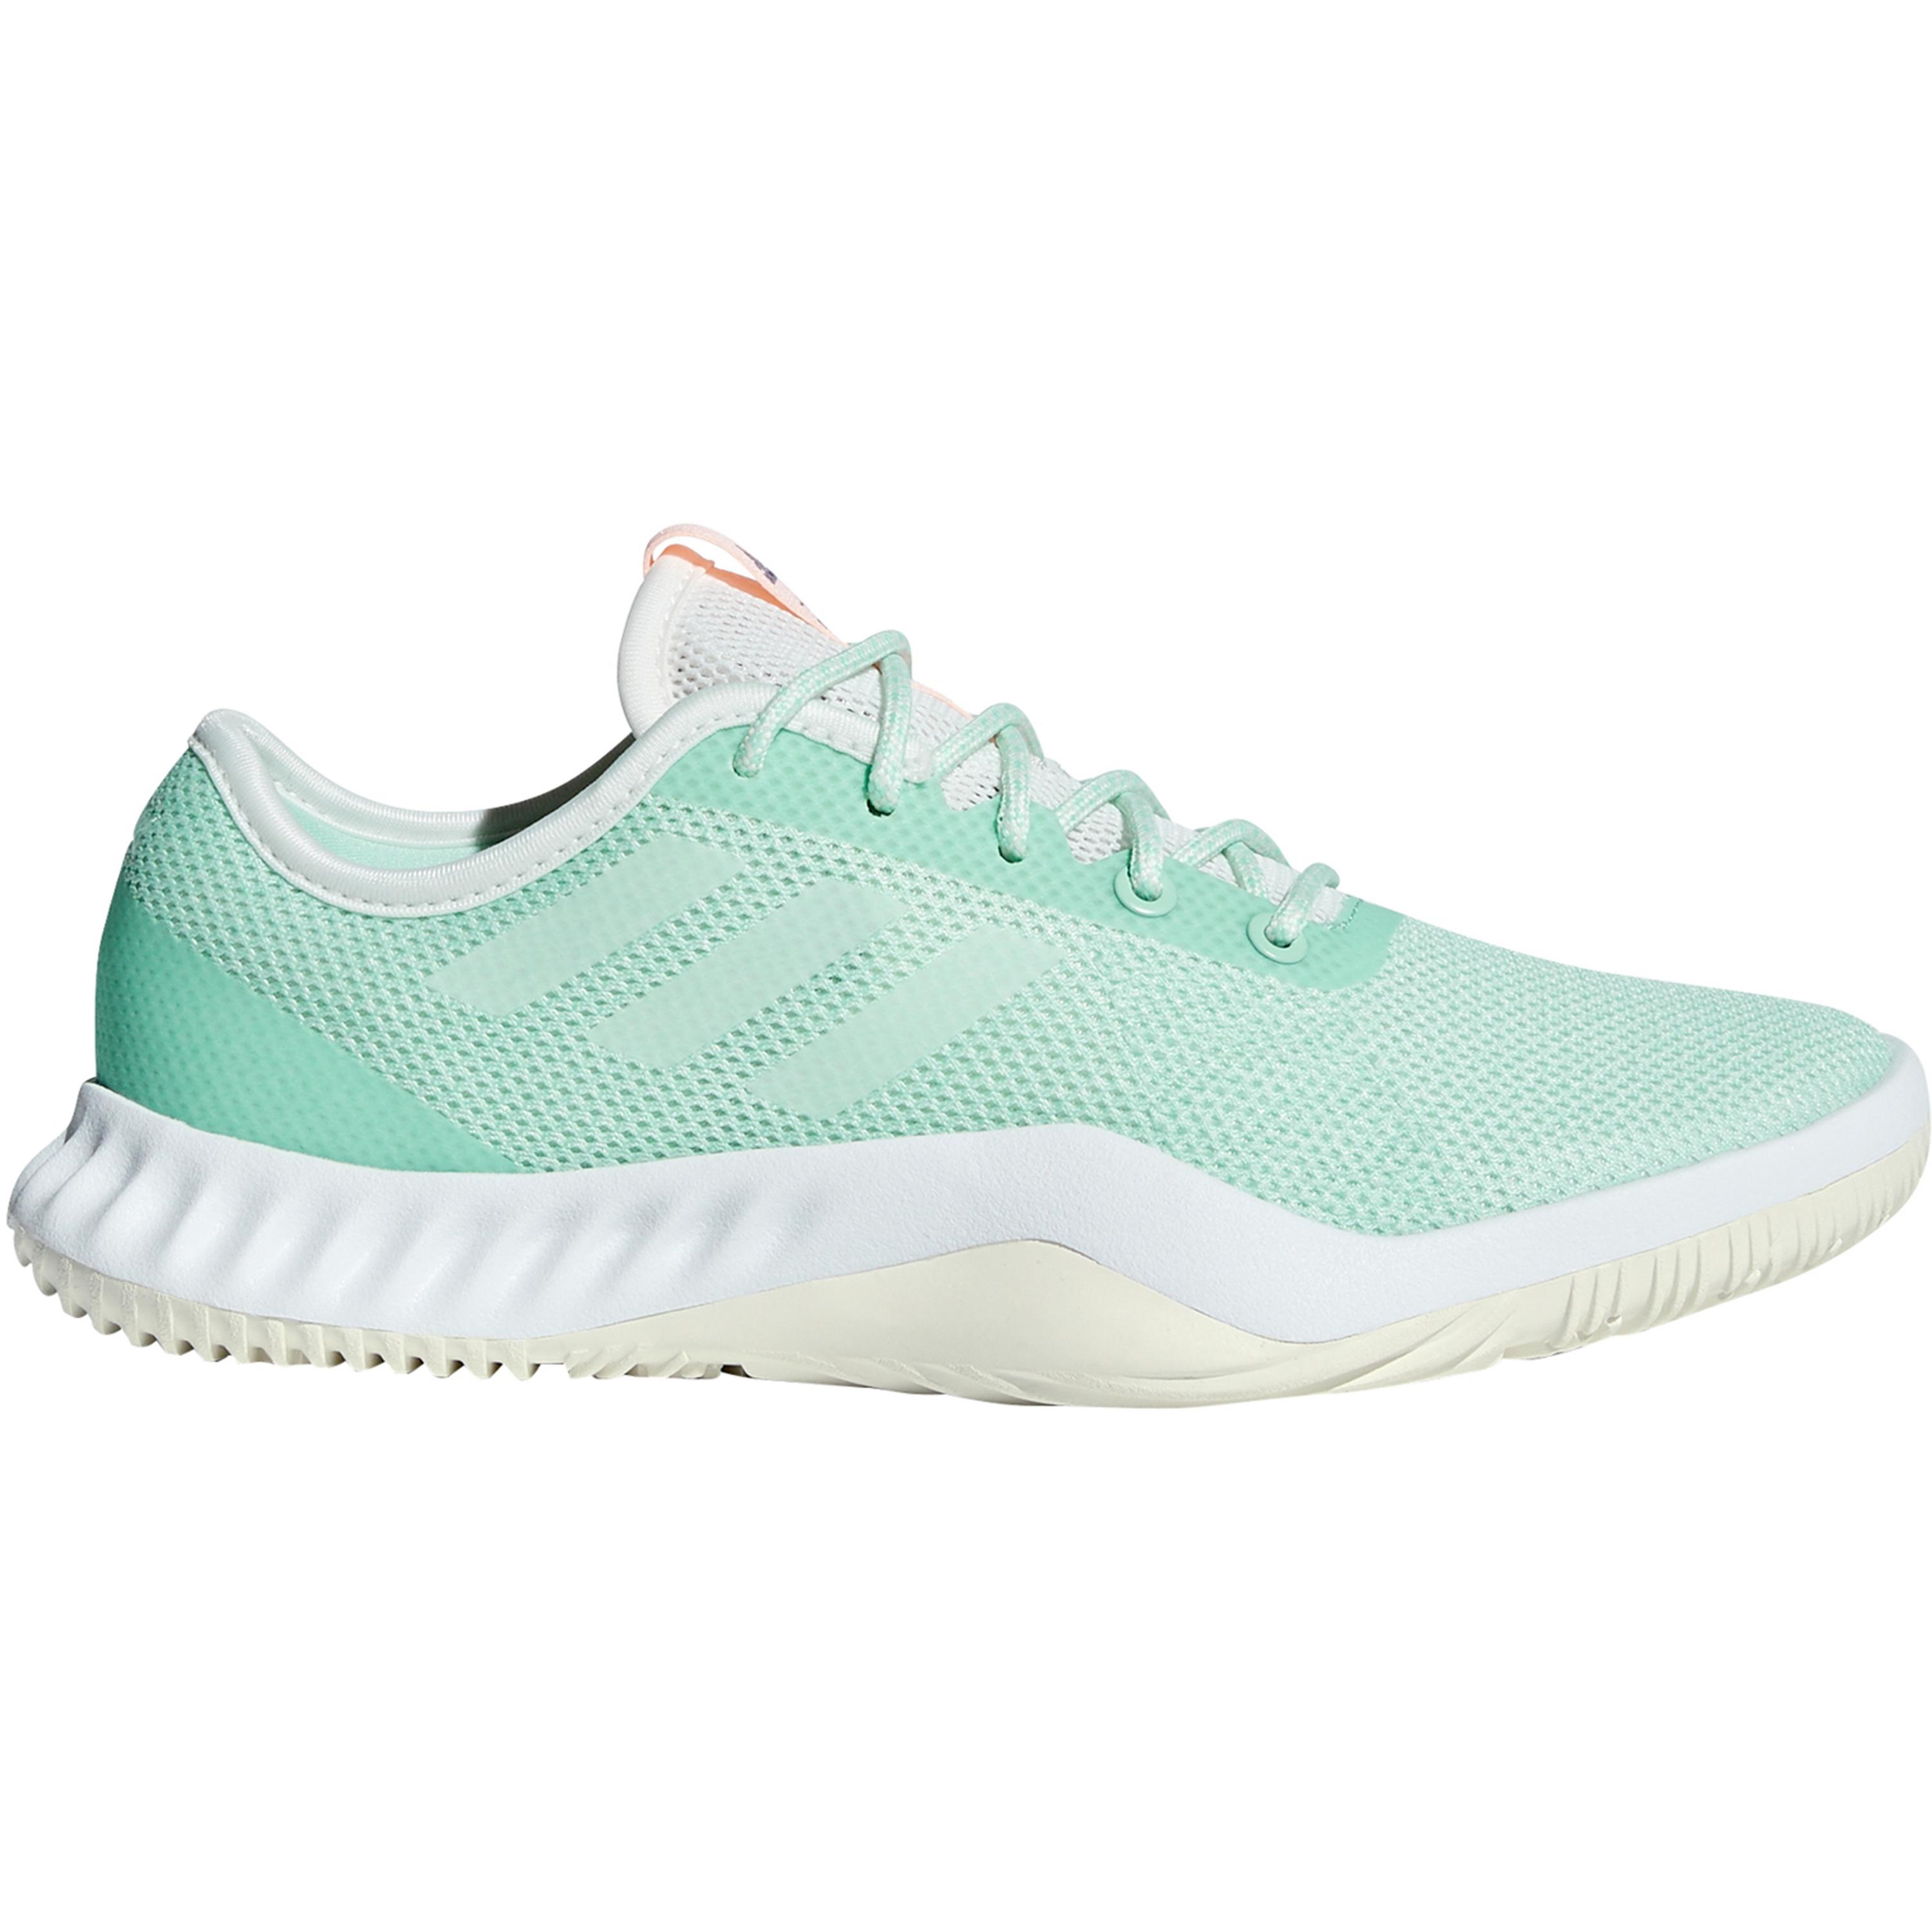 adidas Crazy Train Fitnessschuhe Damen